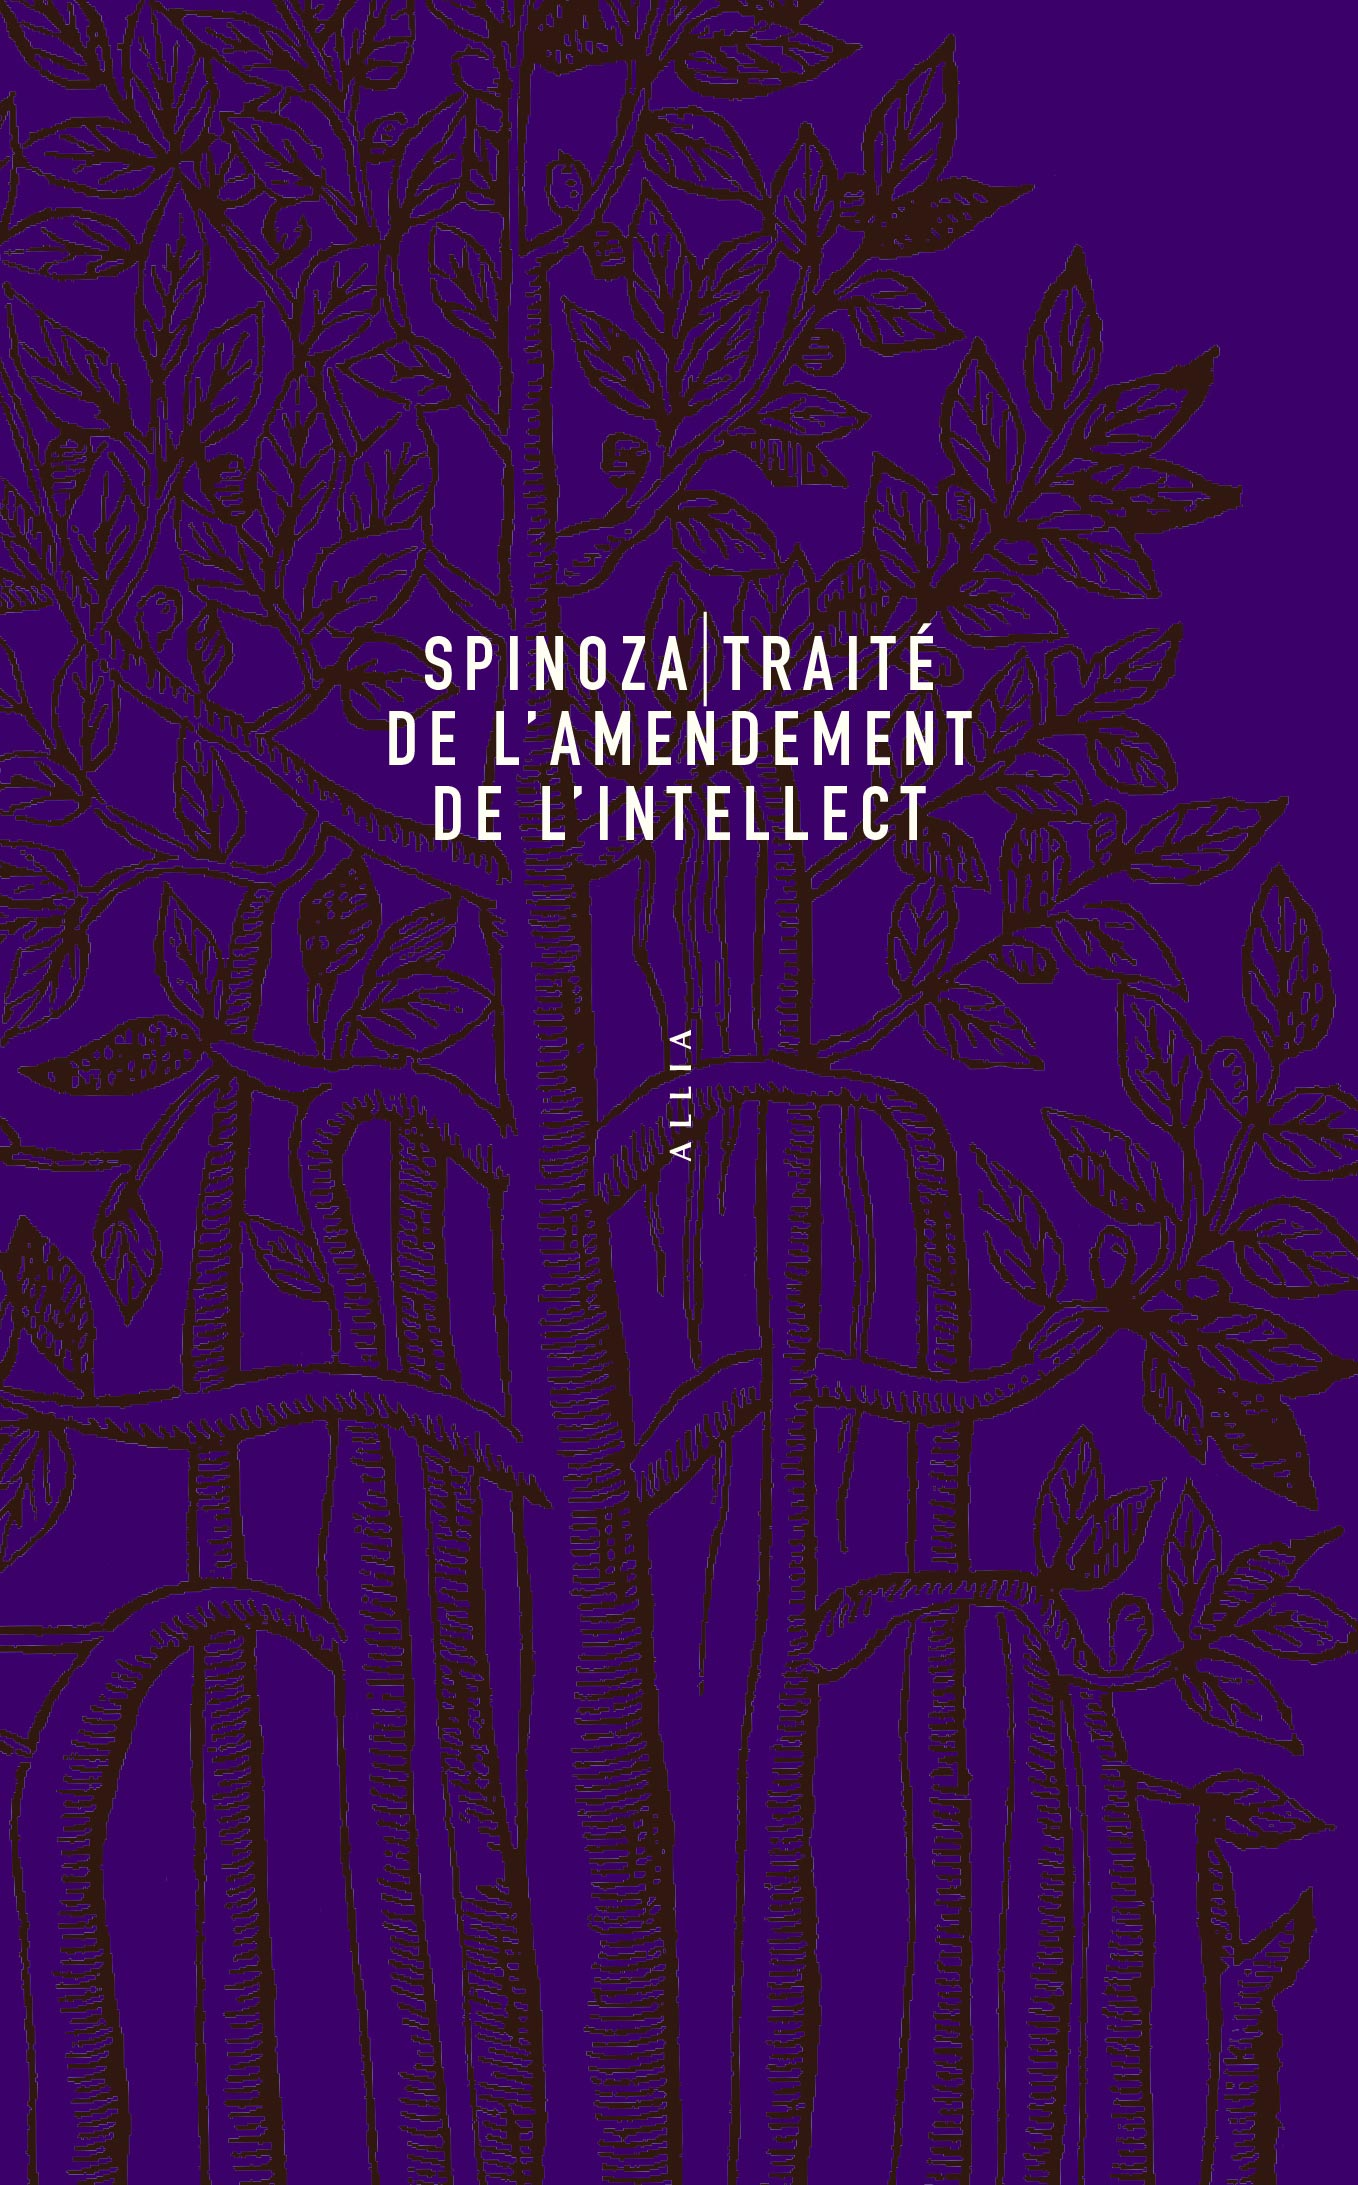 Traité de l'amendement de l'intellect